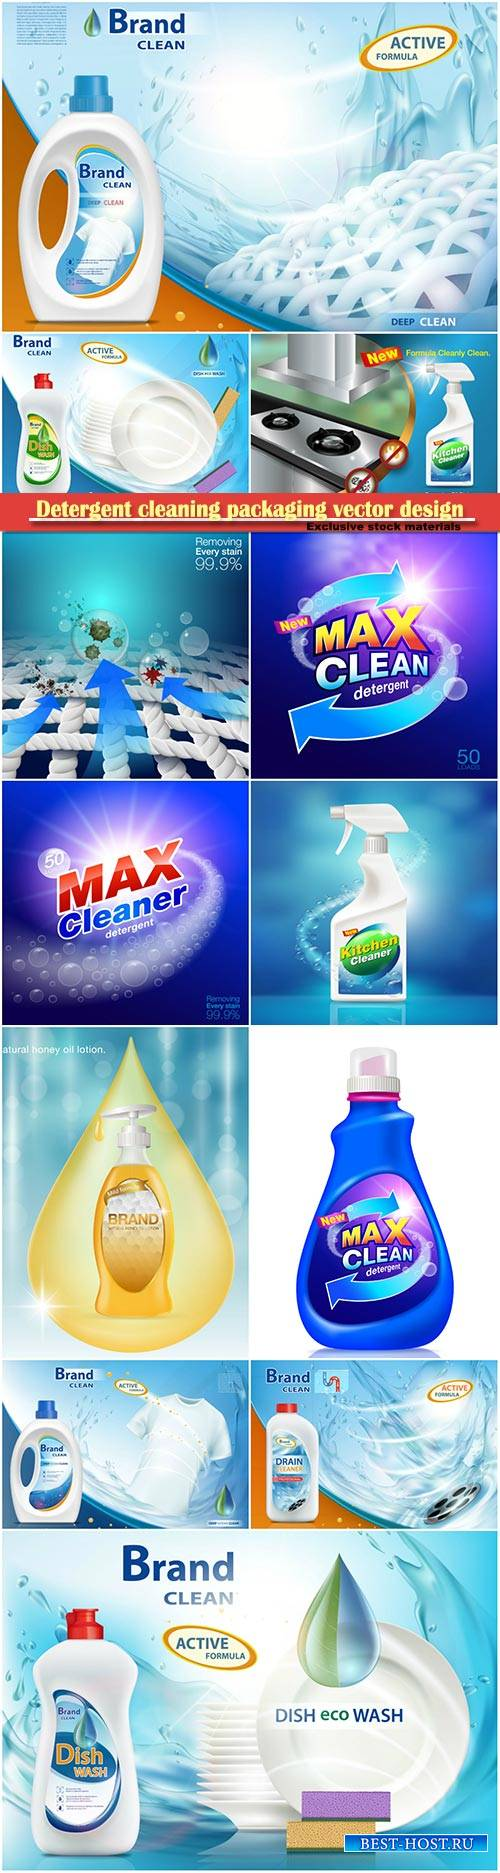 Detergent cleaning packaging vector design